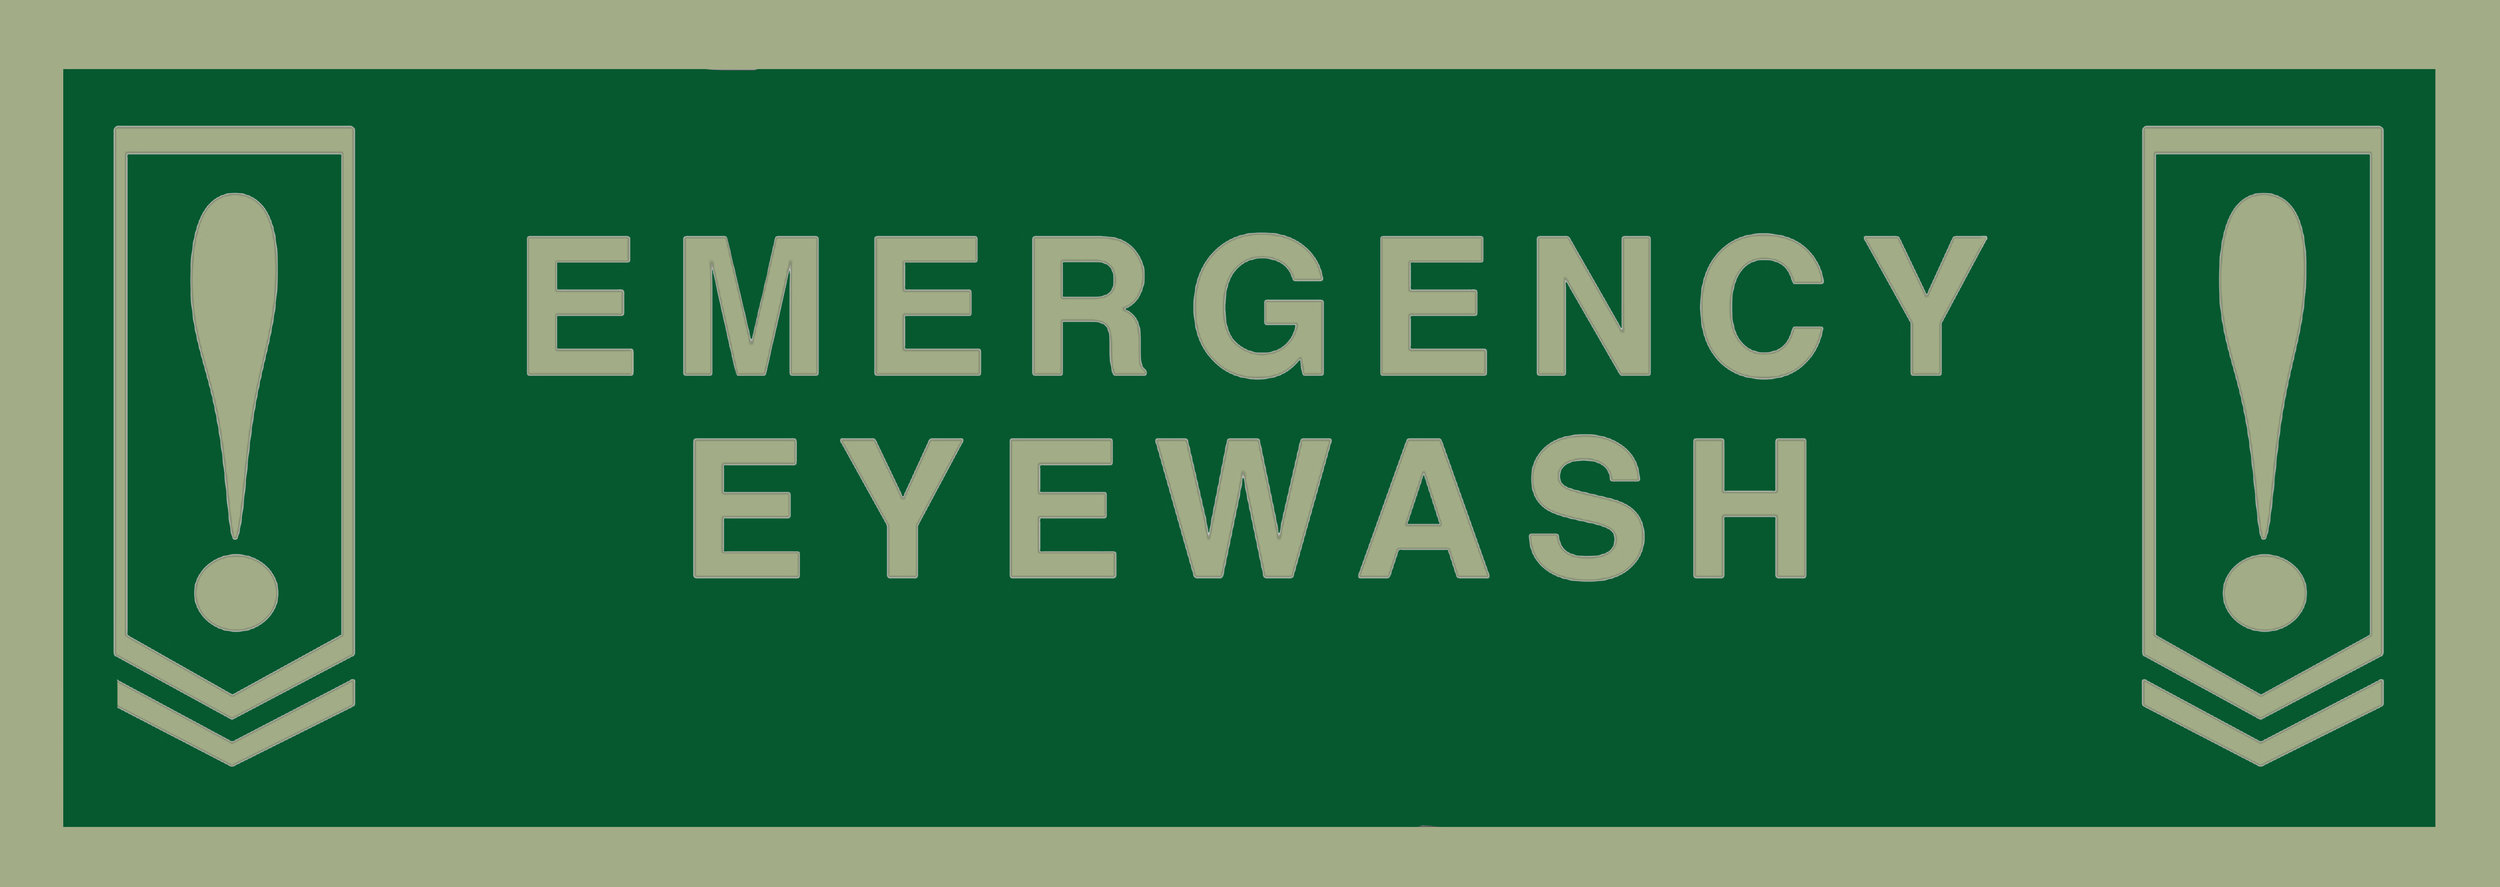 green emergency eyewash 3.jpg